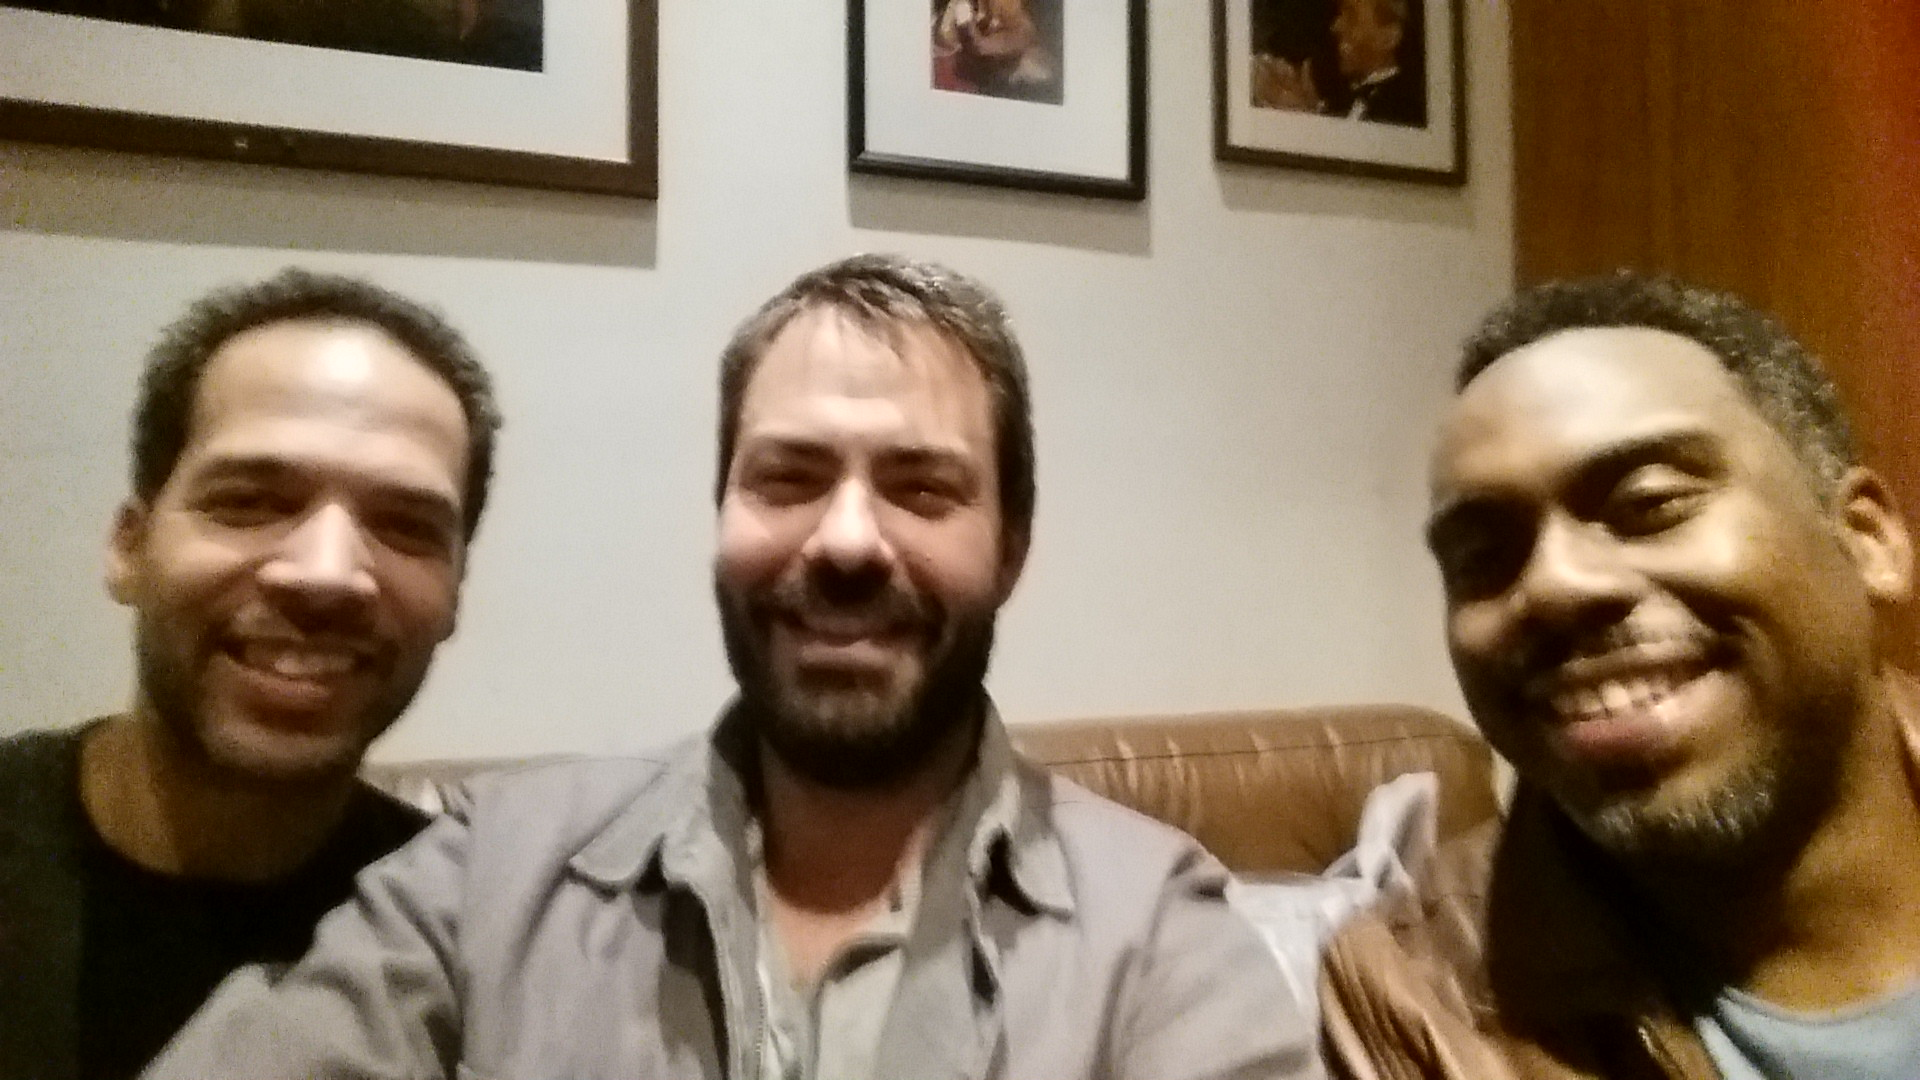 Hanging with my old bandmates Nate Smith & Jesse Milliner after their show with Lee Ritenour at The Blue Note.